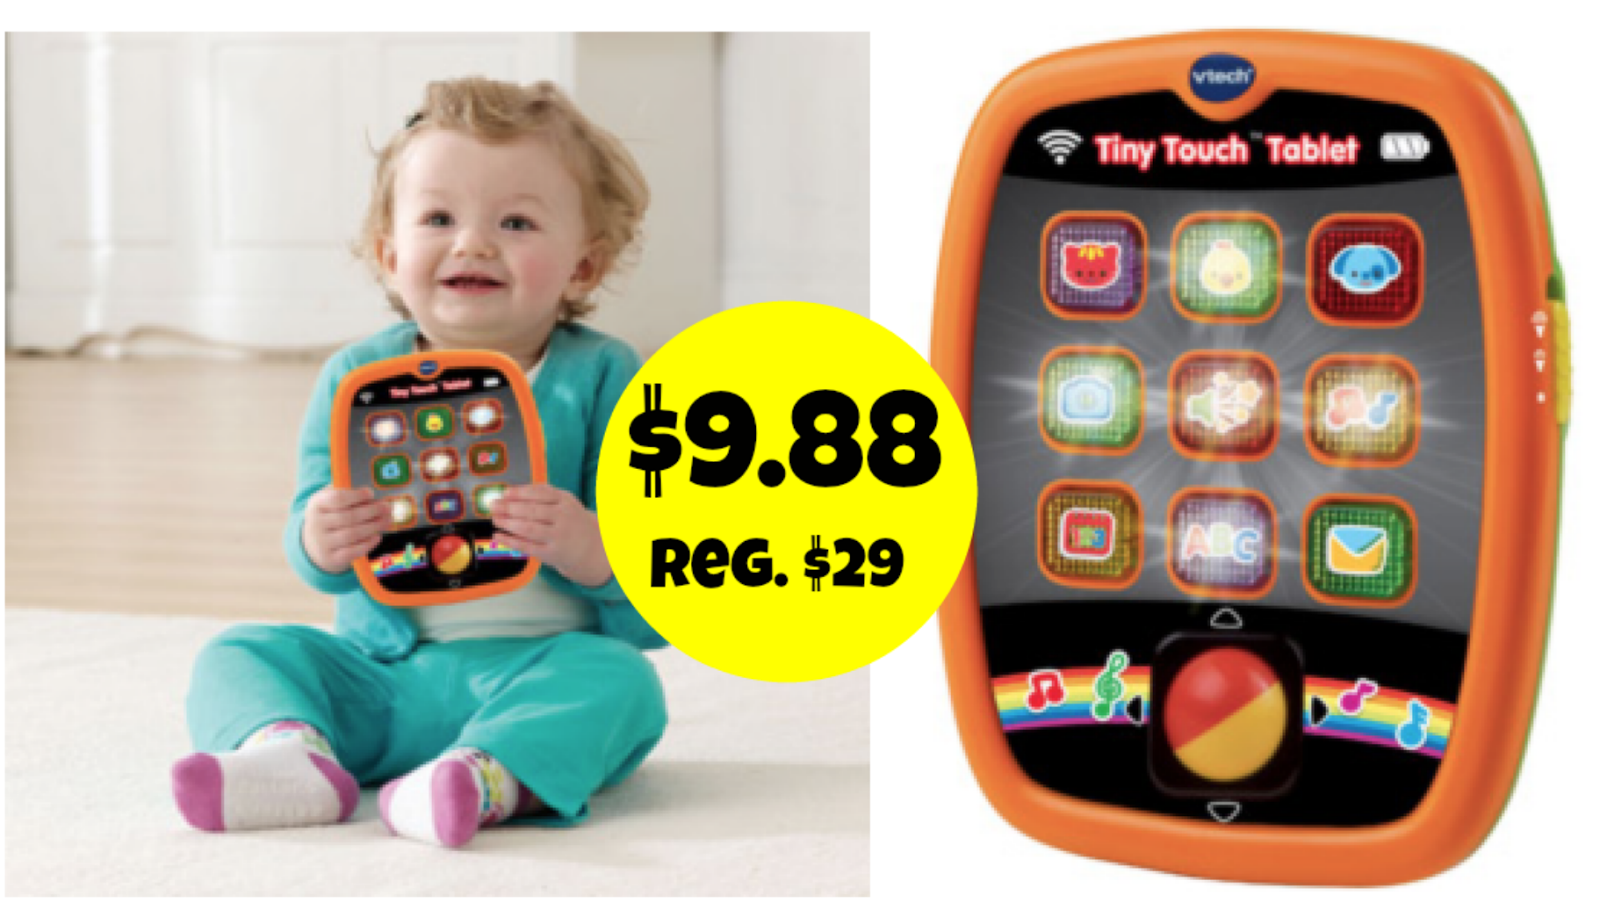 http://www.thebinderladies.com/2014/11/walmartcom-vtech-tiny-touch-tablet-988.html#.VG1174fduyM